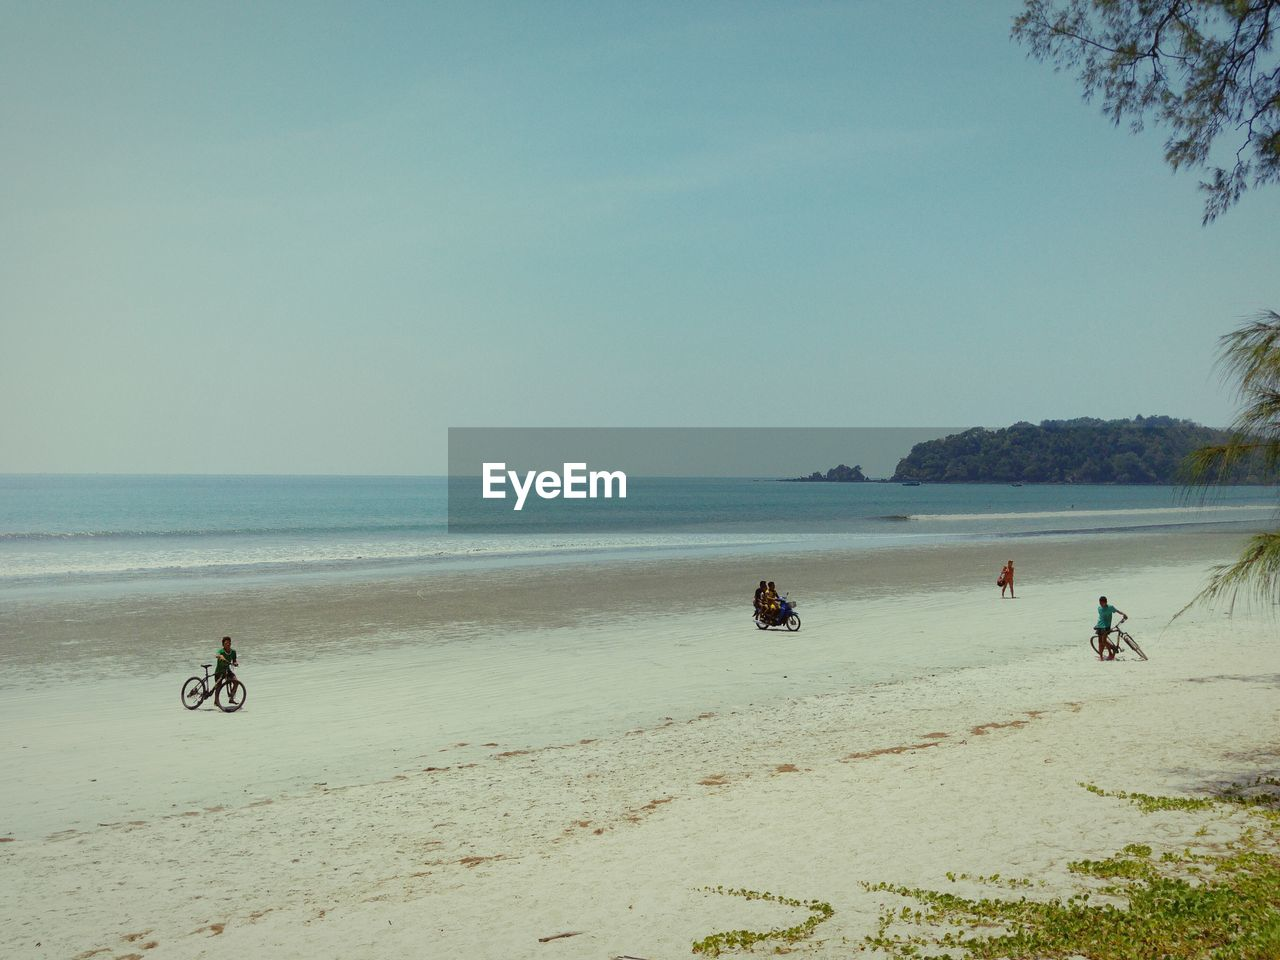 sea, beach, water, shore, sand, nature, scenics, horizon over water, bicycle, real people, men, transportation, beauty in nature, outdoors, day, lifestyles, sky, vacations, clear sky, people